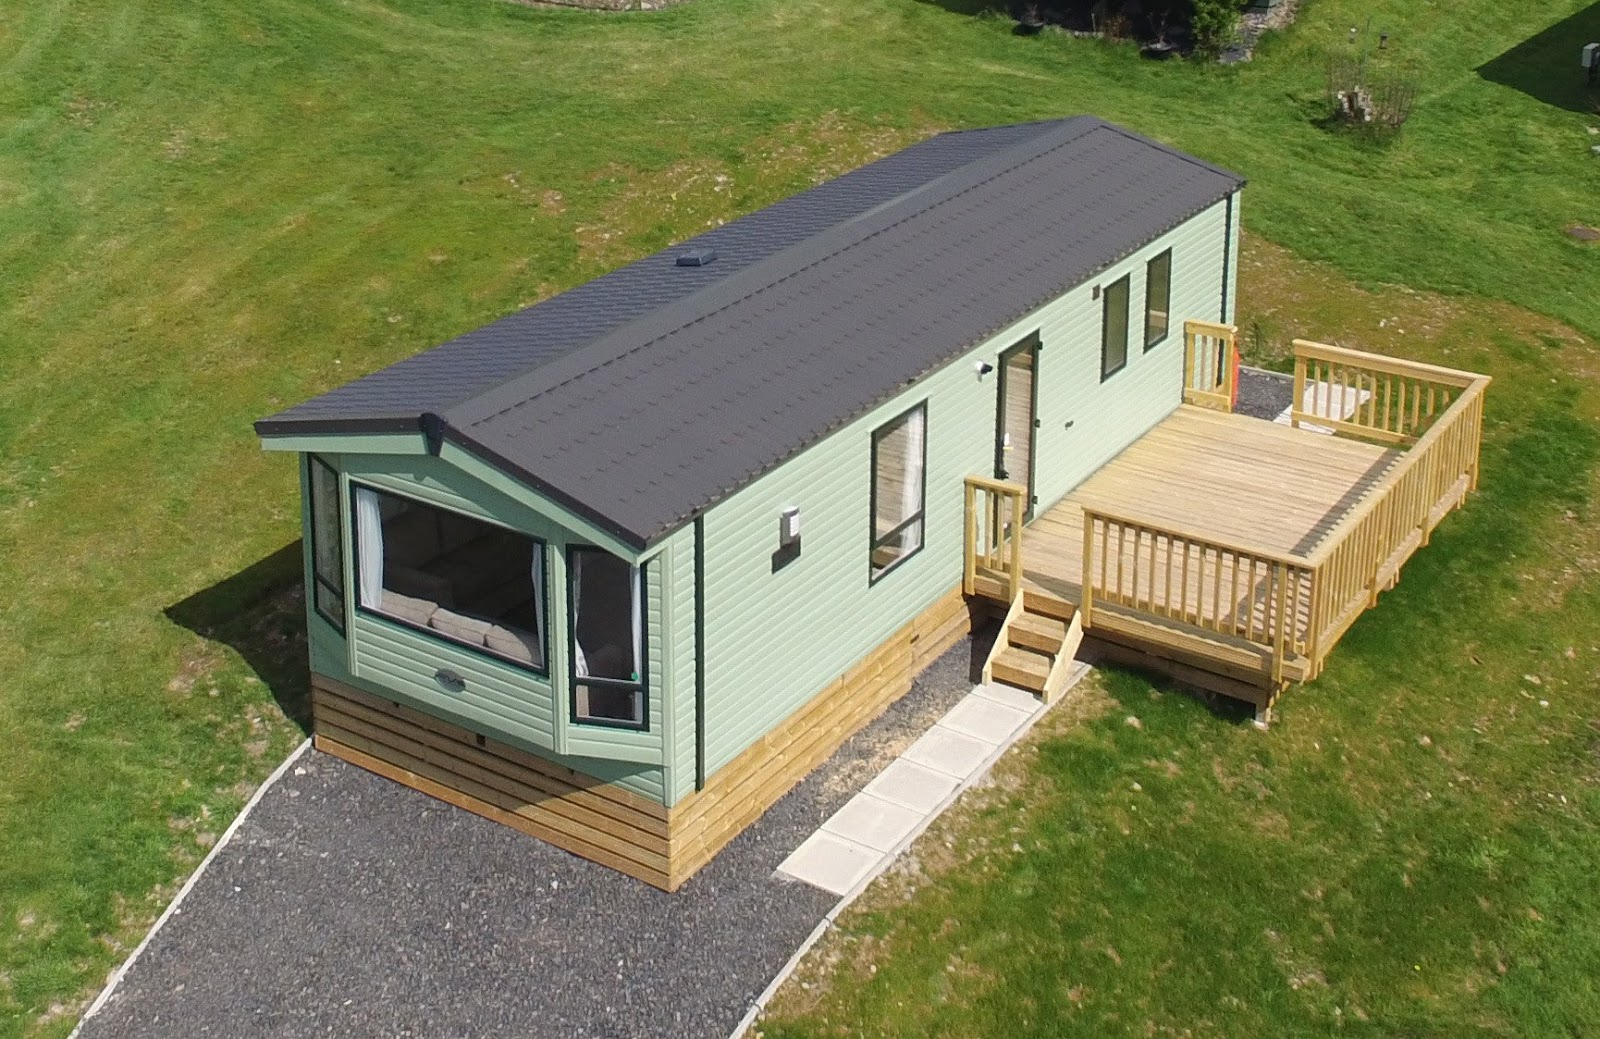 Garden carpentry timber decking design and build aerial for 6 metre lengths of decking